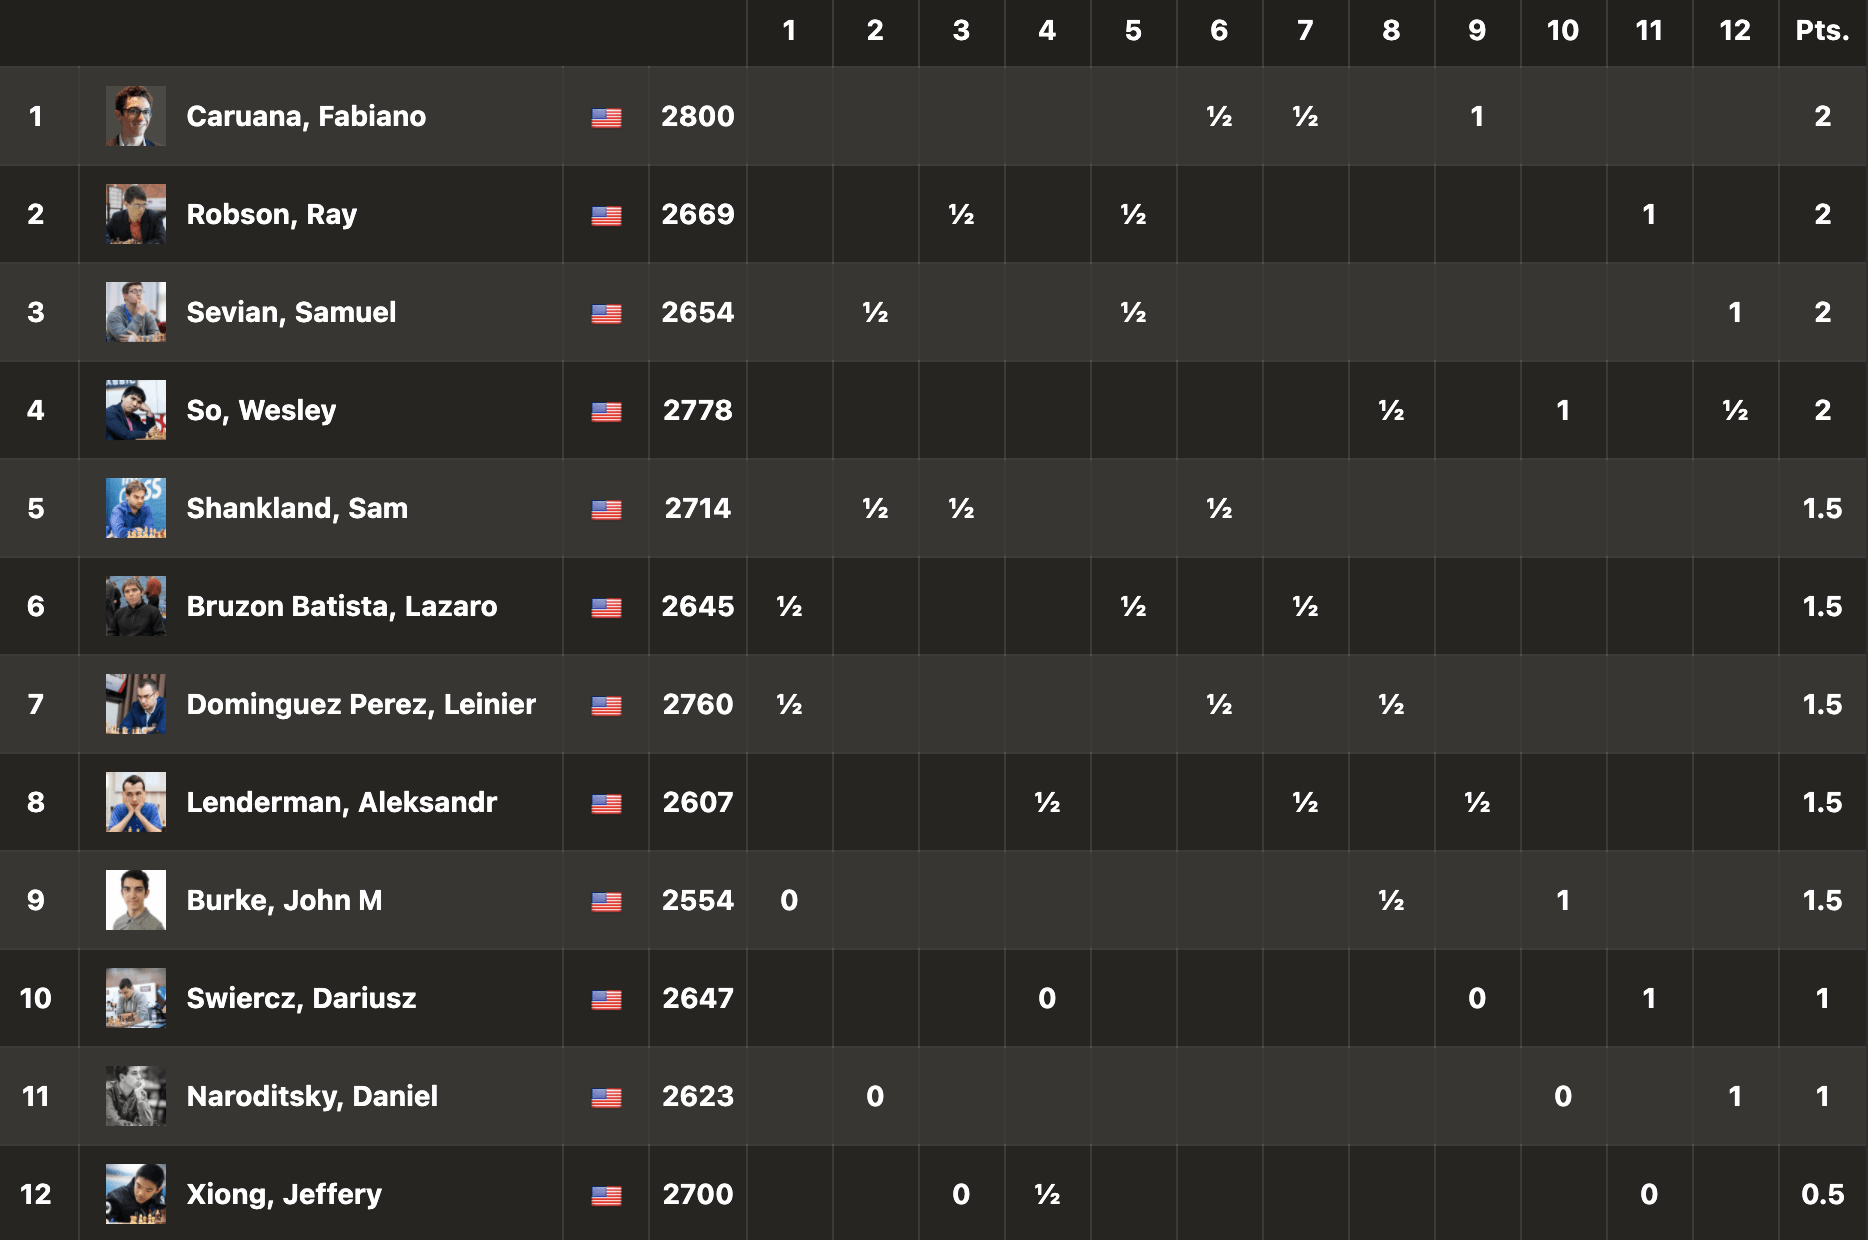 2021 US Championships standings round 3